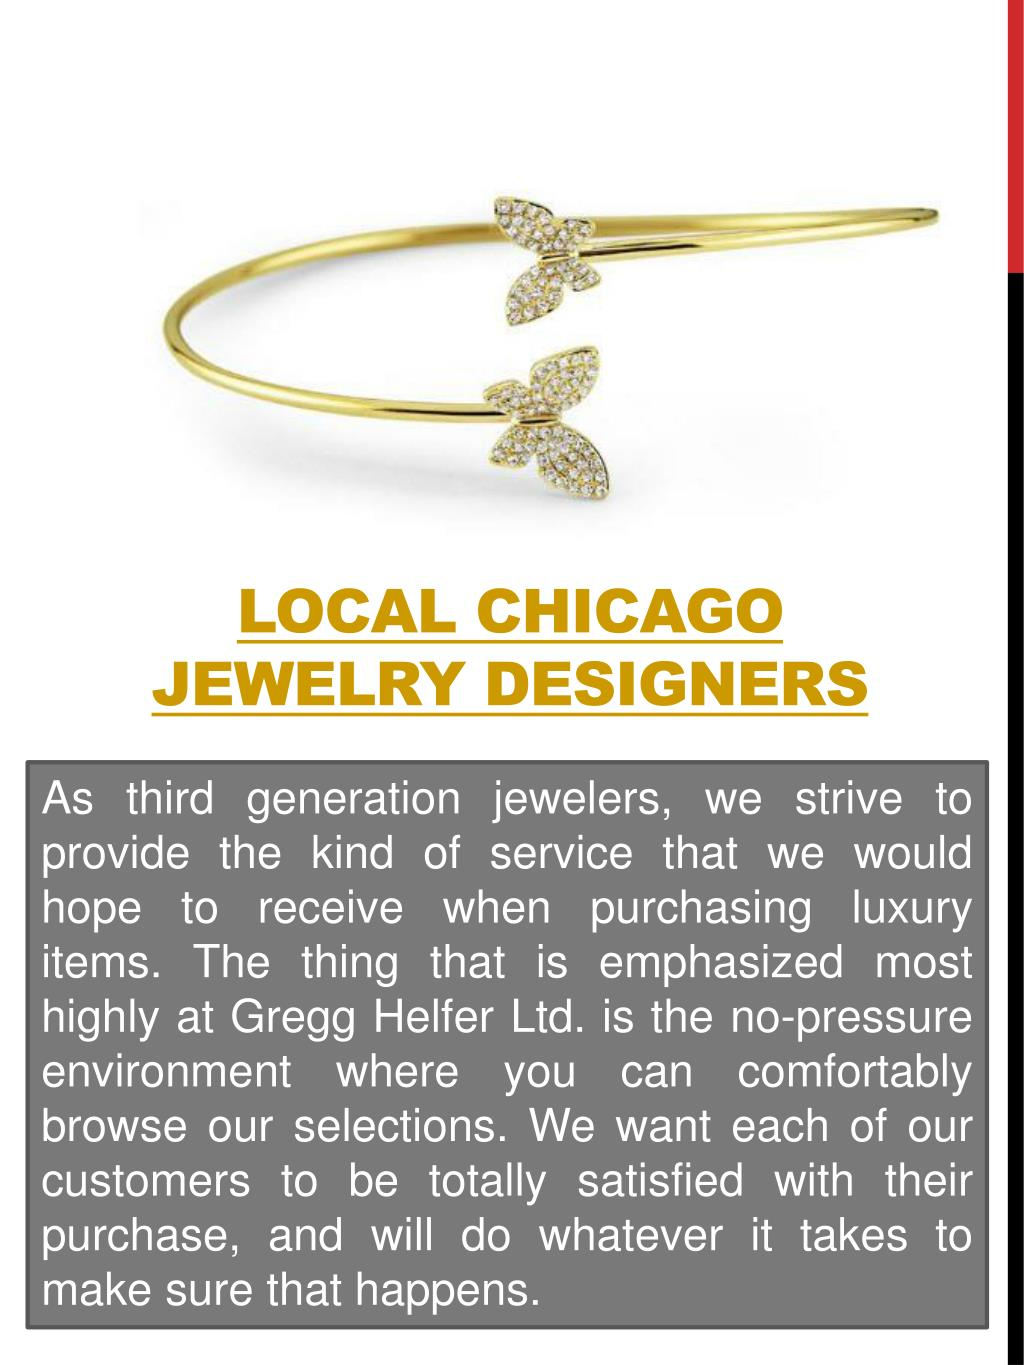 Ppt Chicago Custom Jewelers Powerpoint Presentation Free Download Id 7578816,Creative Vector Graphic Designer Visiting Card Design